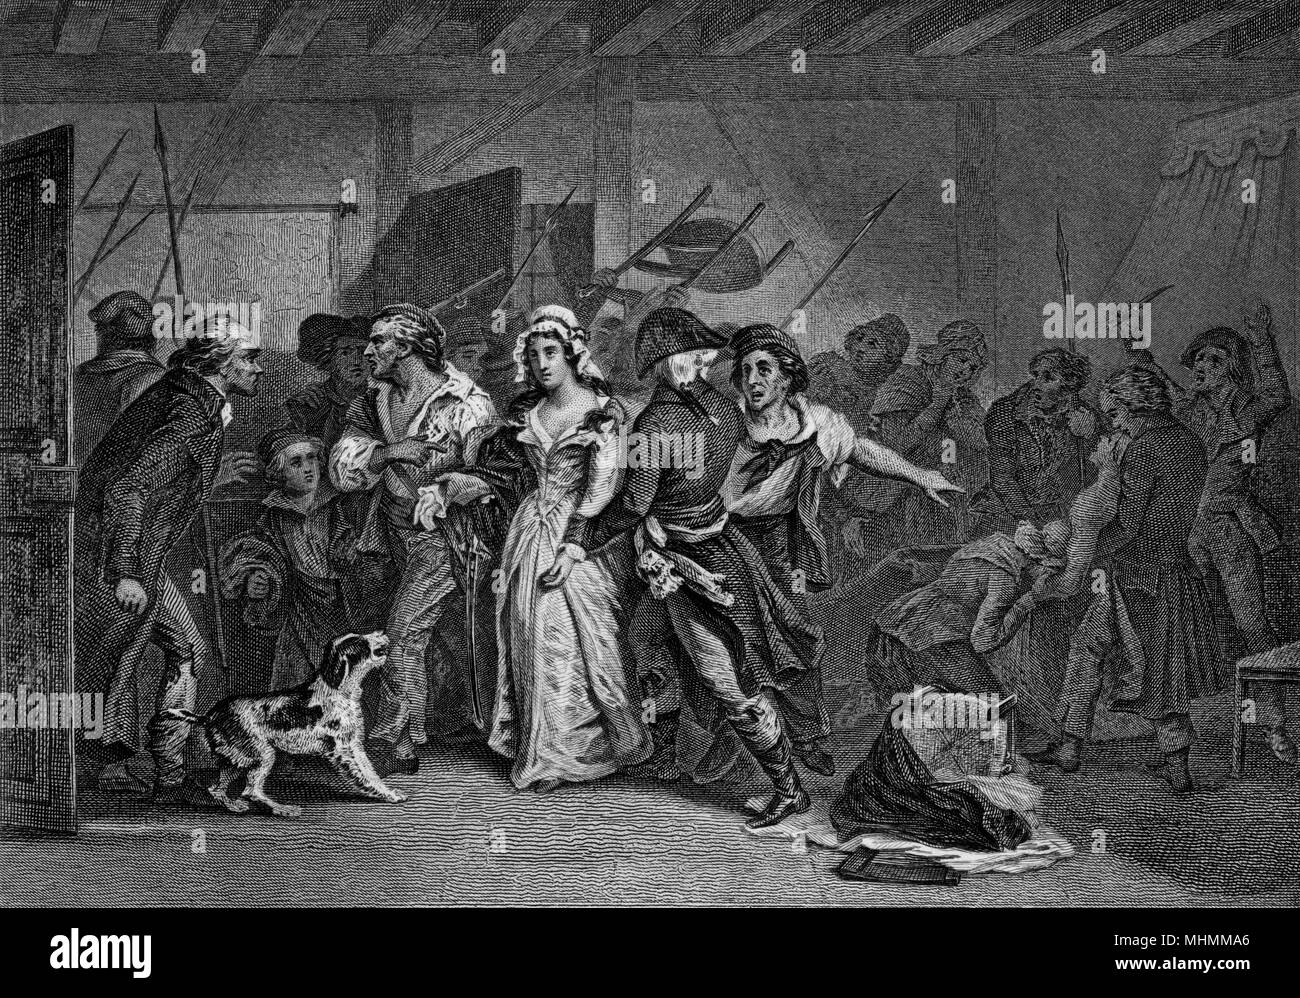 Charlotte Corday, who opposes the Montagnard extremists, assassinates their leader, Marat : she kills him in his bath, for which she will herself be executed.     Date: 13 July 1793 Stock Photo